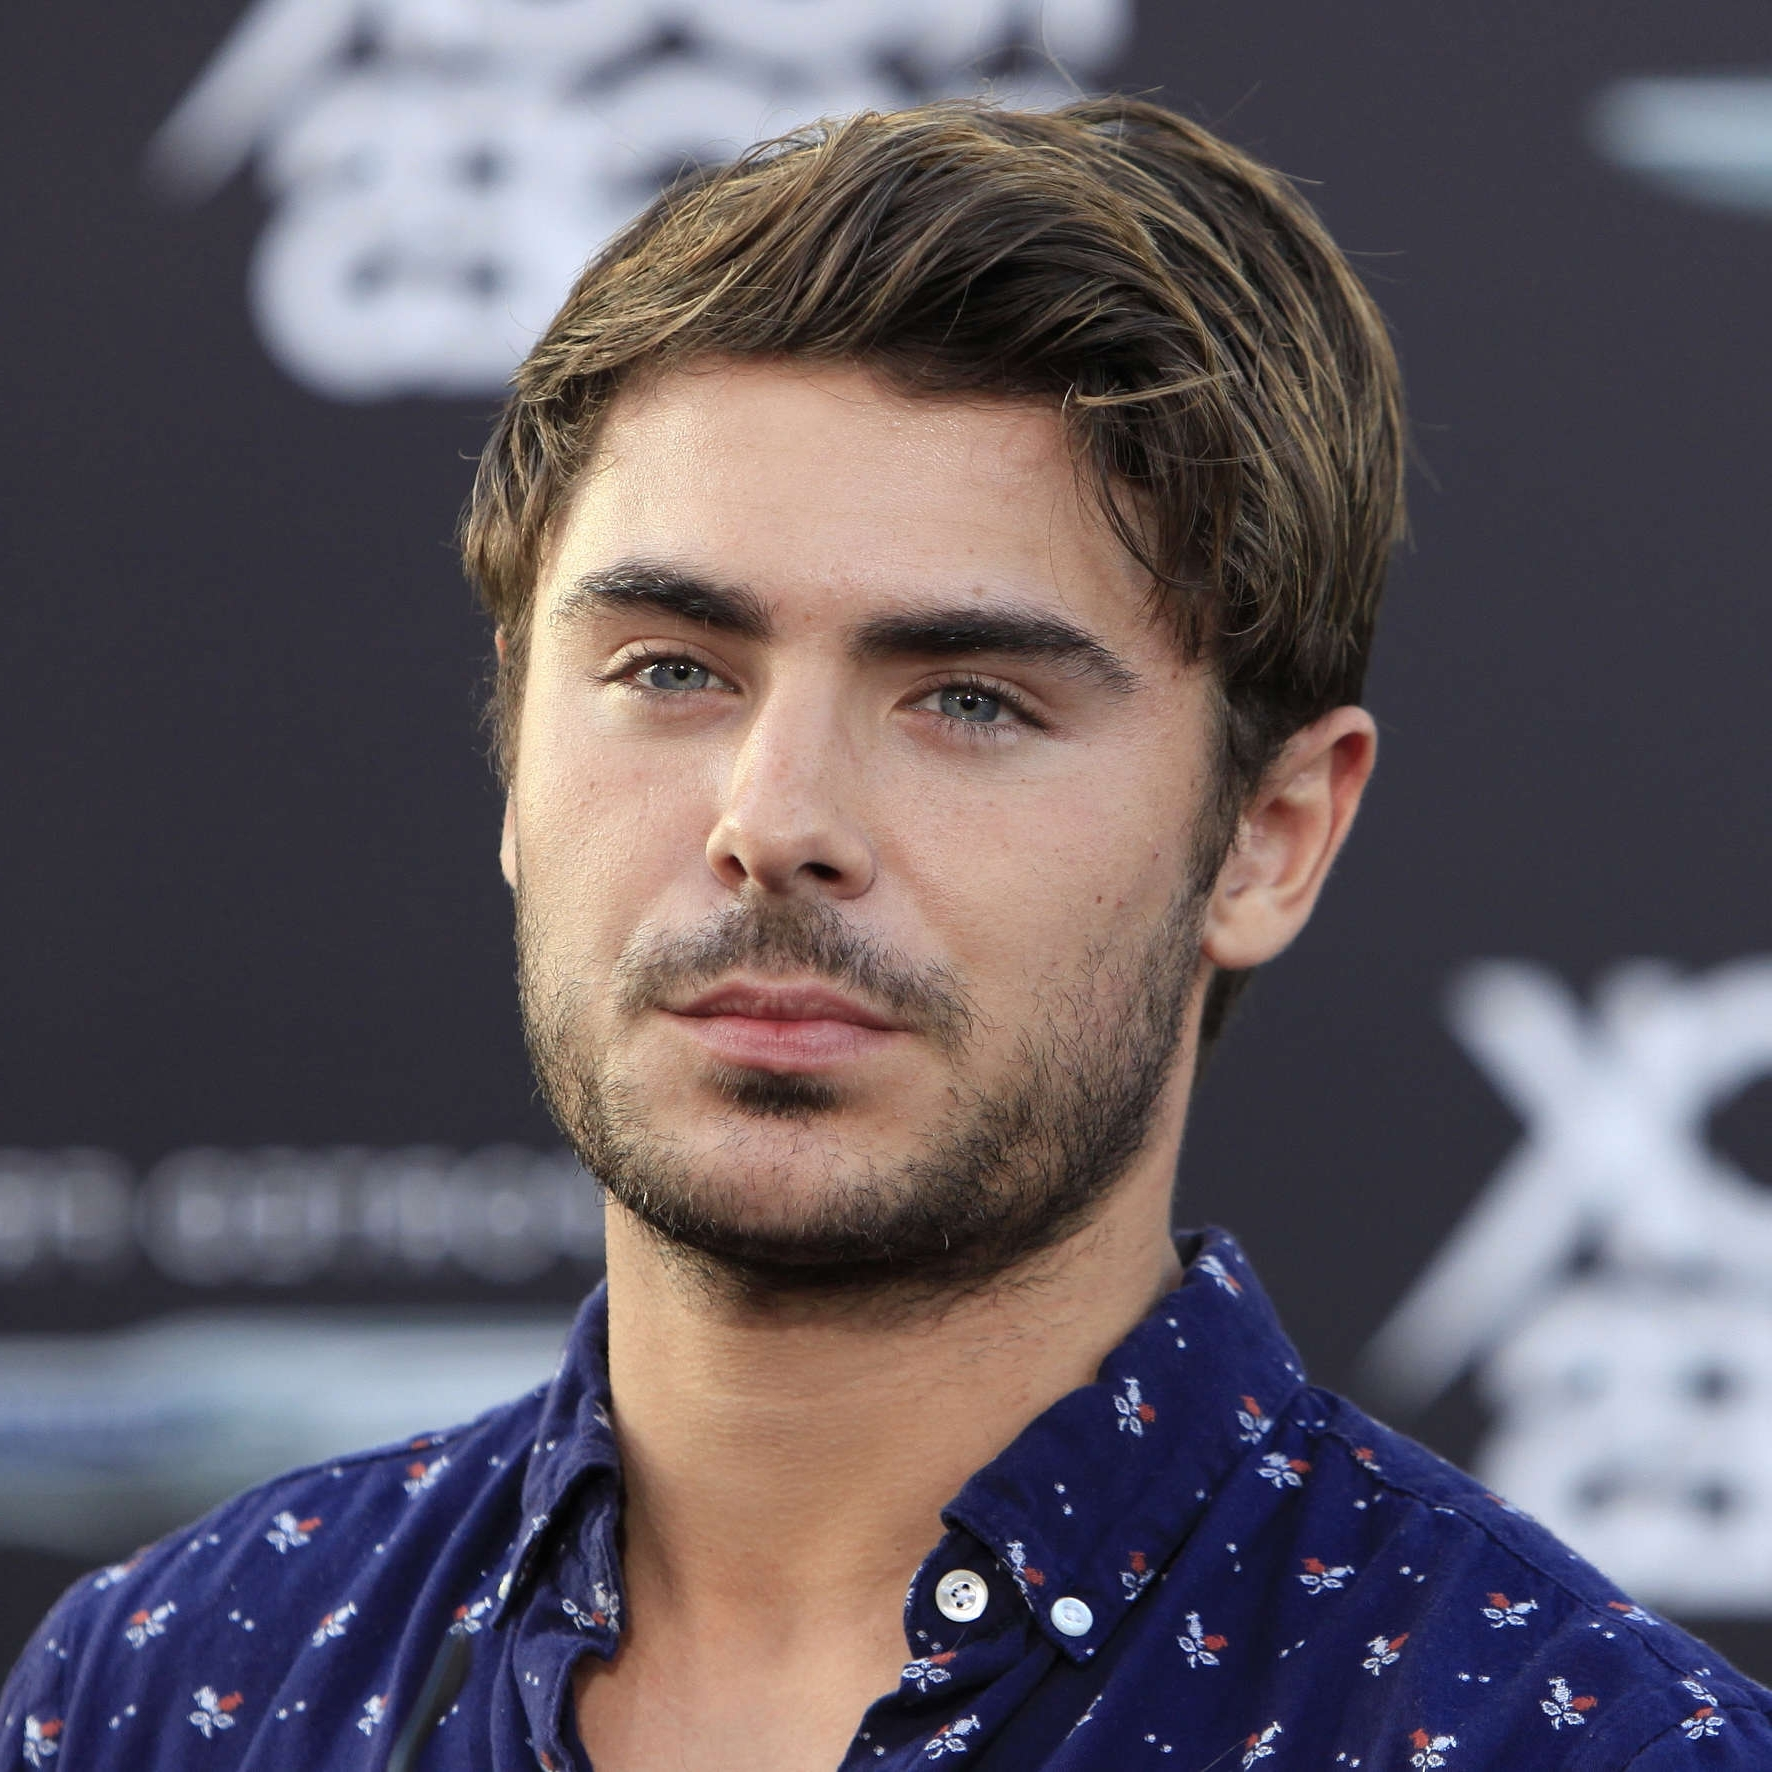 20 Haircuts For Men With Thick Hair (High Volume) Medium Hairstyles For Thick Hair Mens